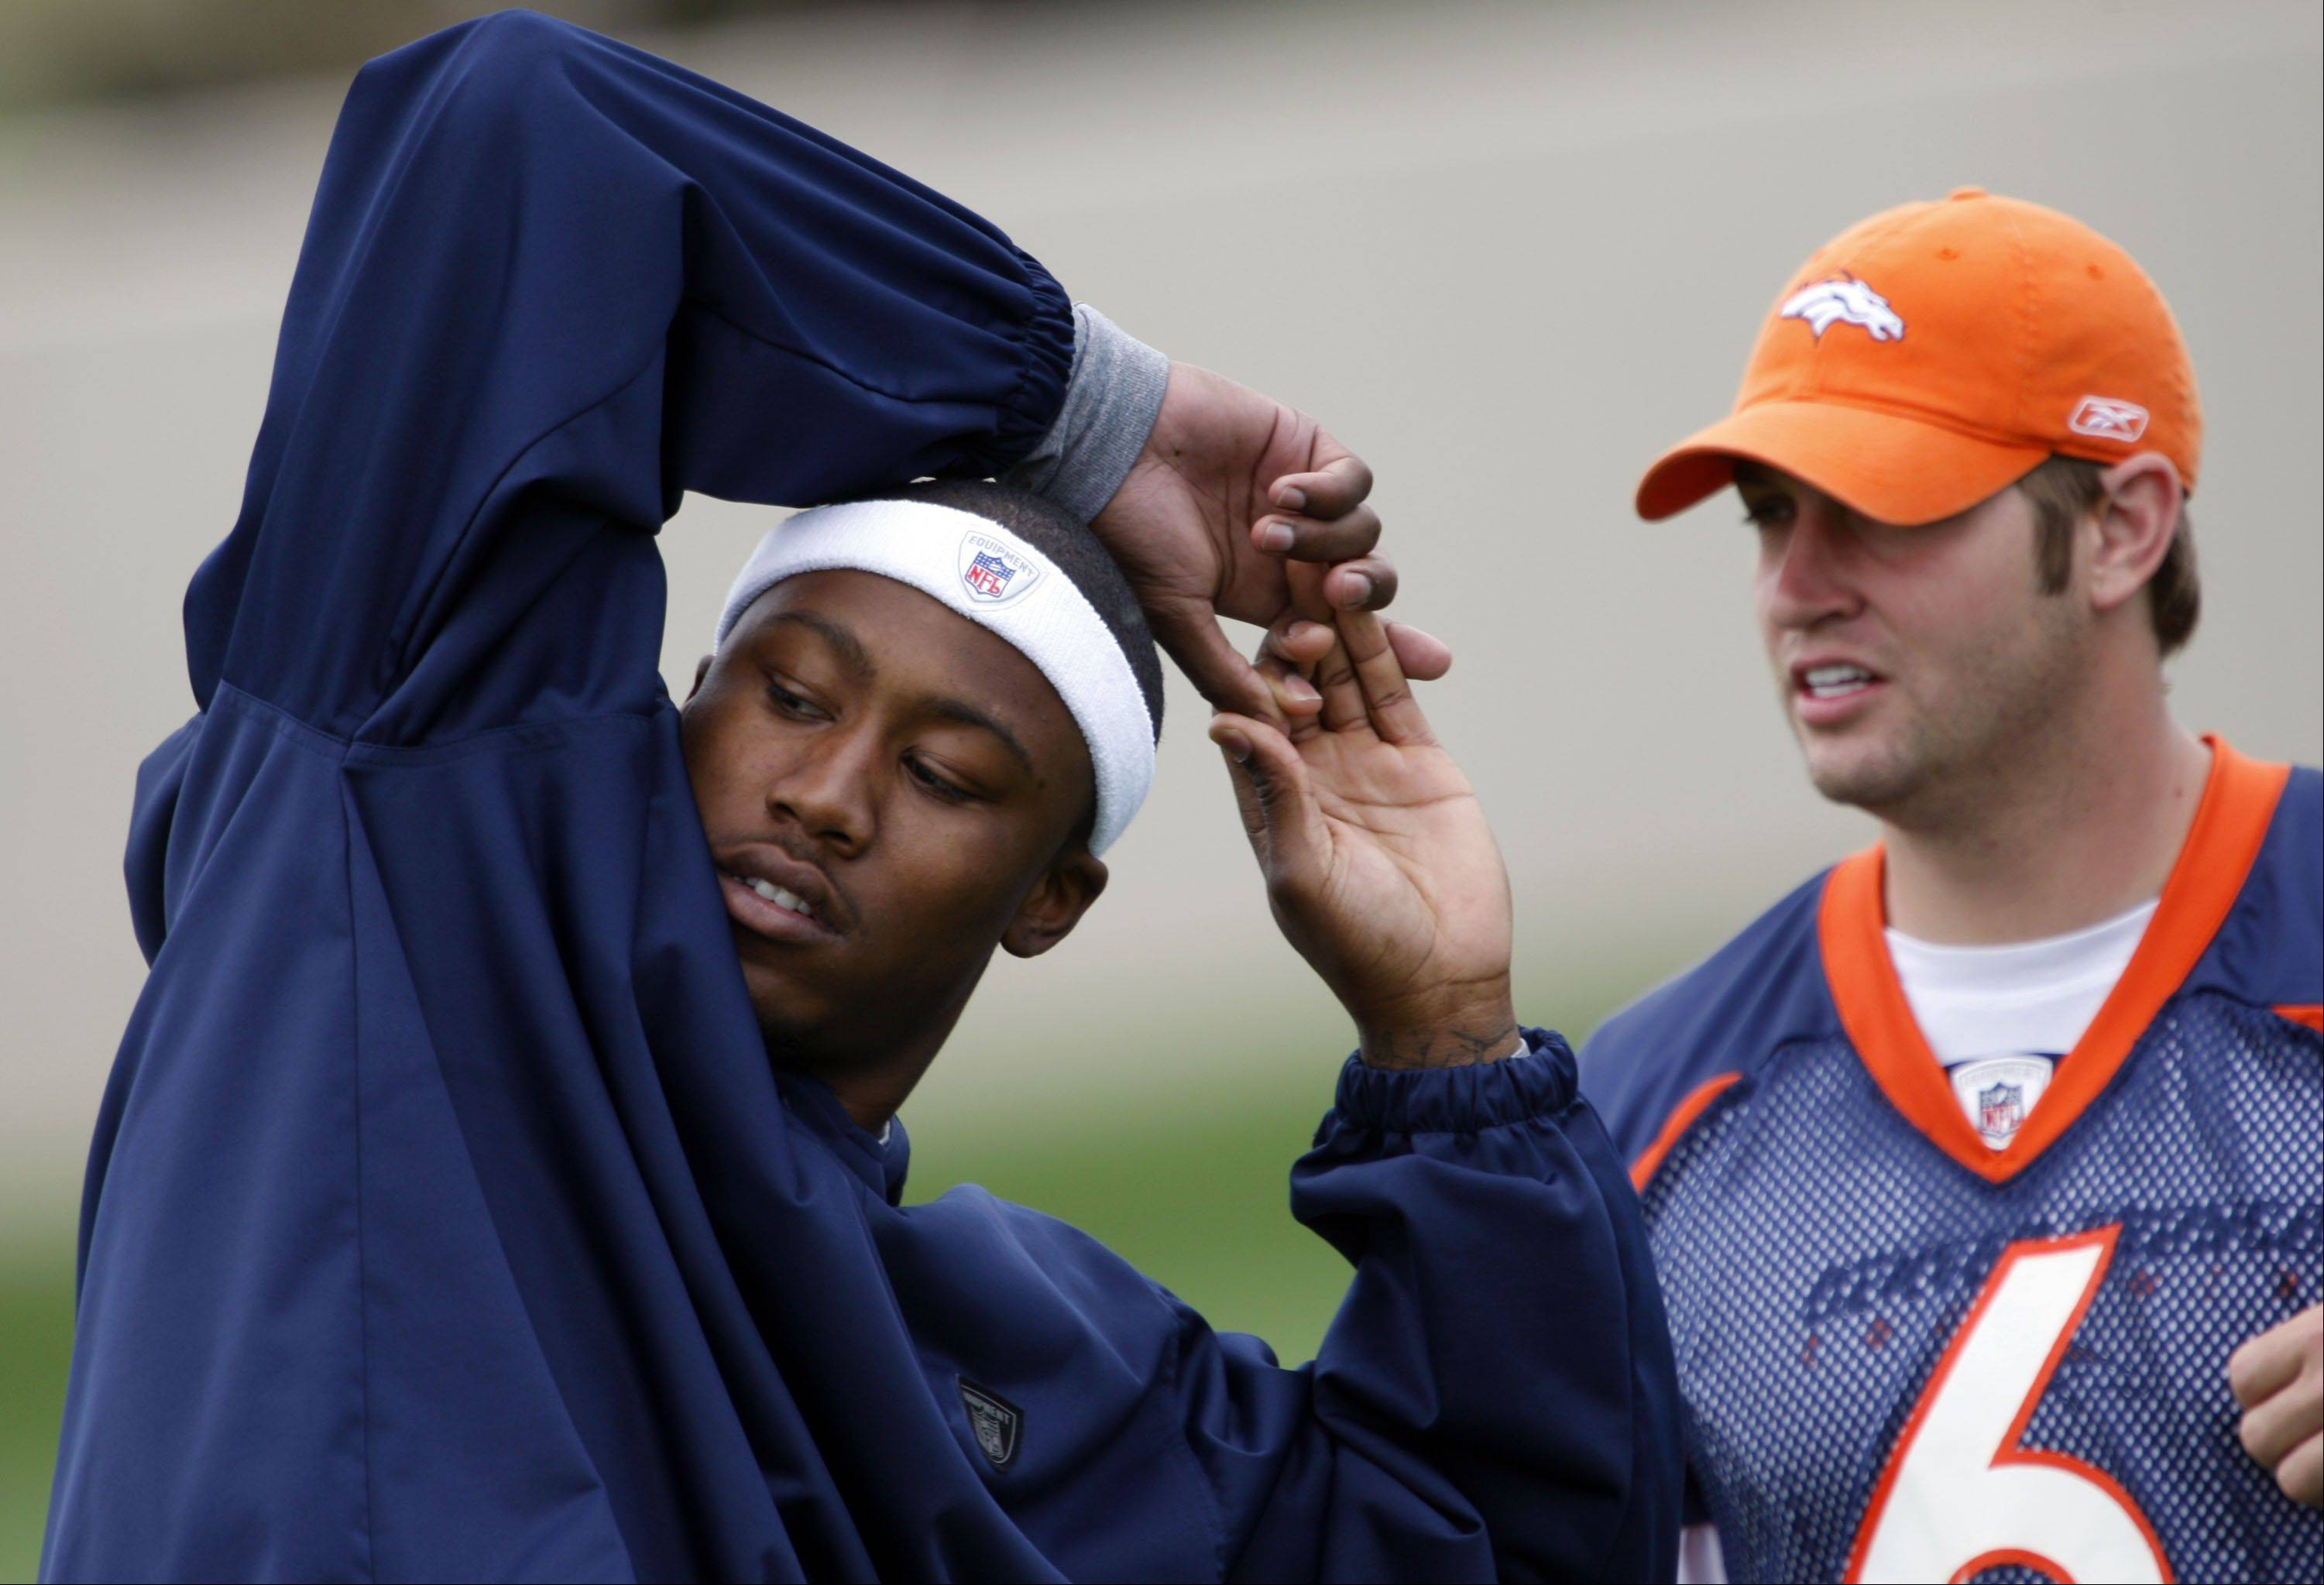 Denver Broncos wide receiver Brandon Marshall, left, and quarterback Jay Cutler were a great combination in Denver for two season. Marshall caught 206 passes from Cutler before they were both traded to other teams.